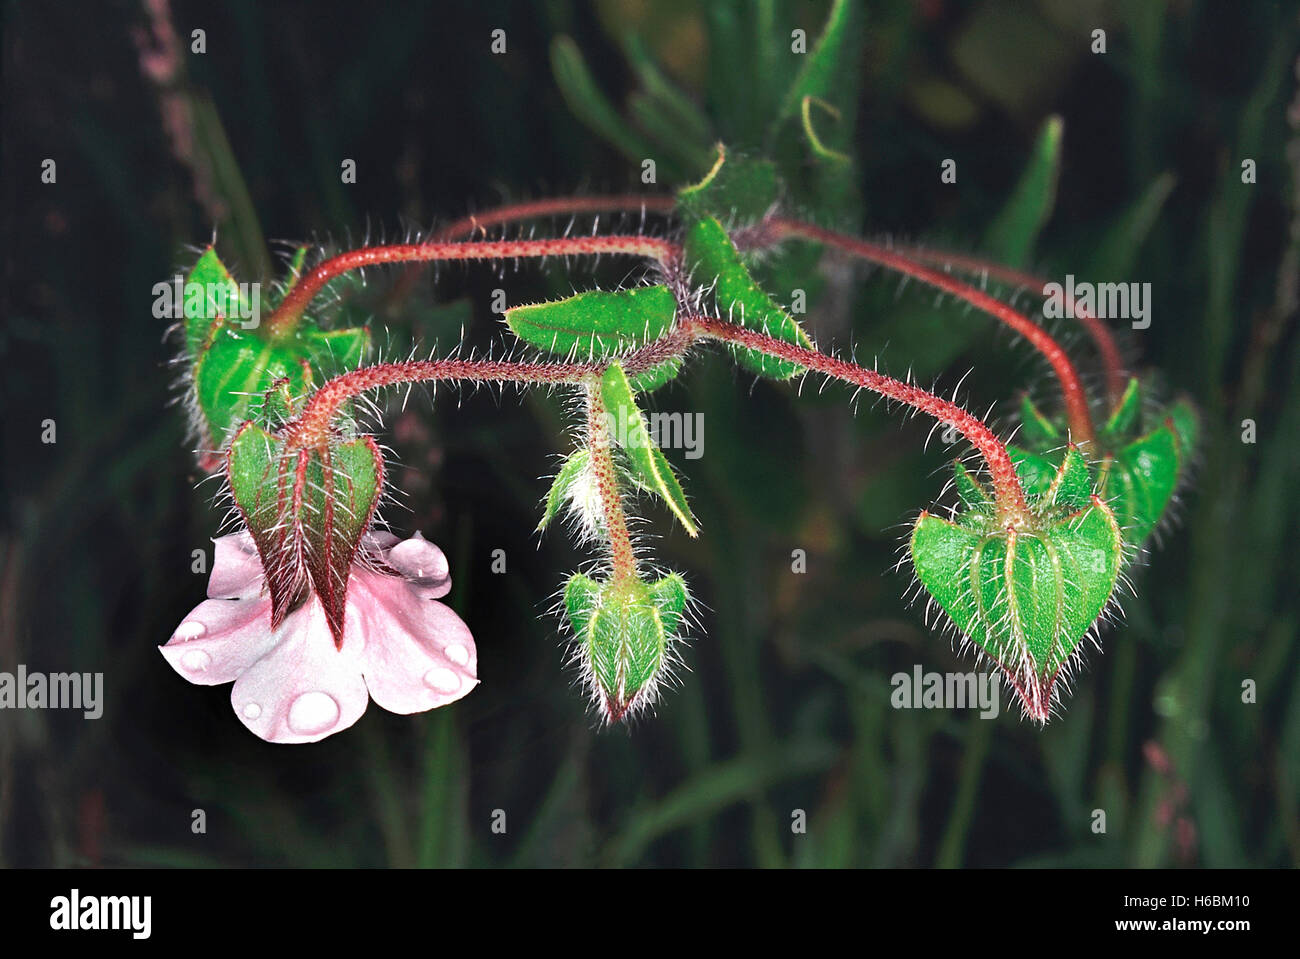 A small herb found in grassy meadows and fallow fields. Trichodesma sp. Family: Boraginaceae. - Stock Image